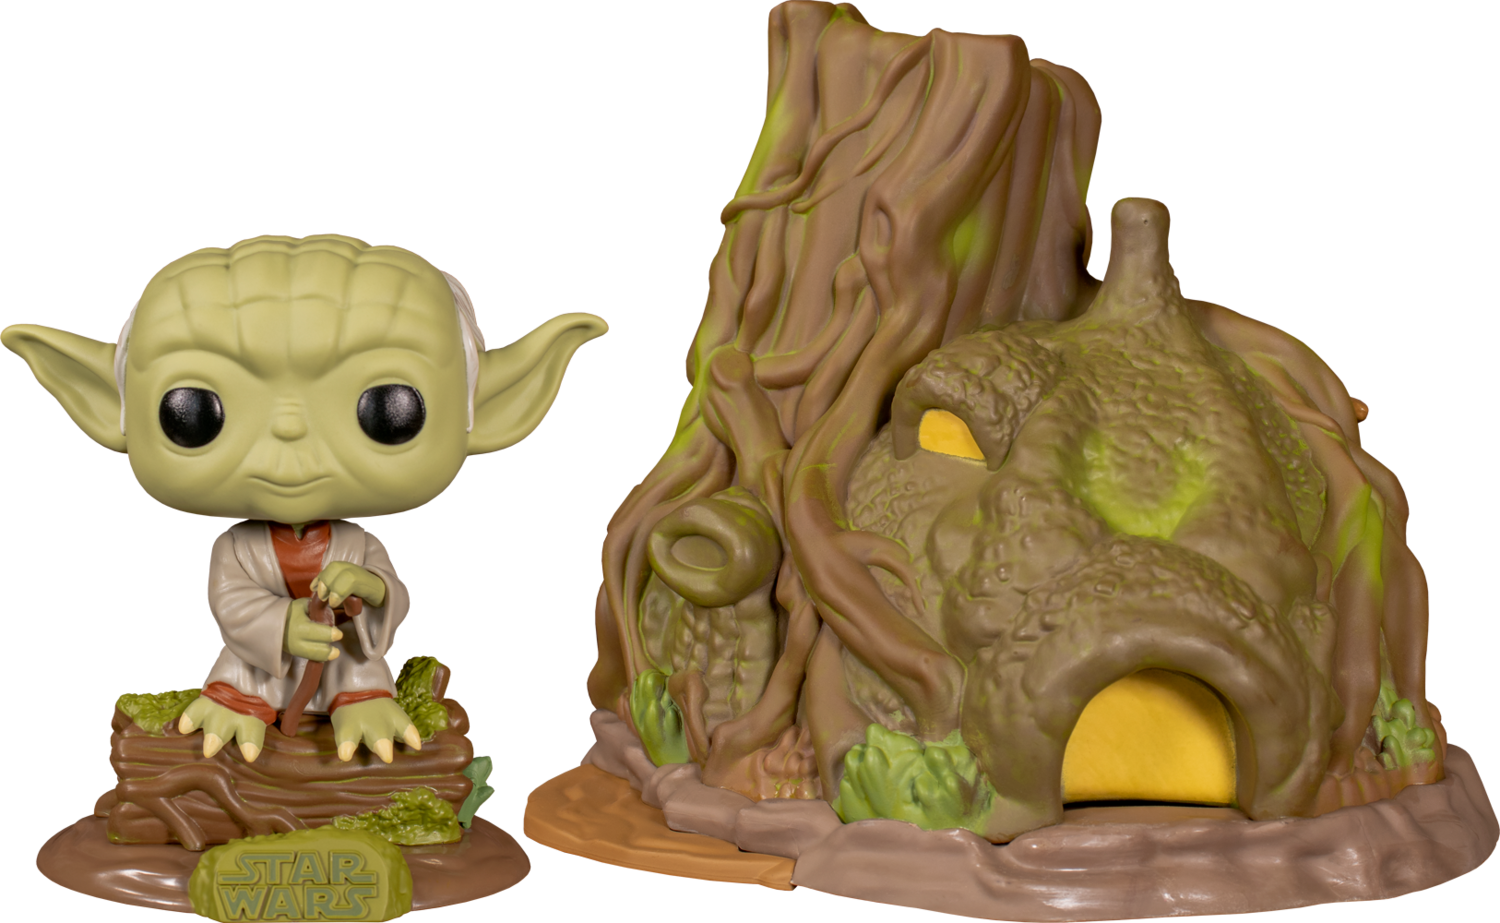 Star Wars Episode V: The Empire Strikes Back - Dagobah Yoda with Hut Pop! Town Vinyl Figure